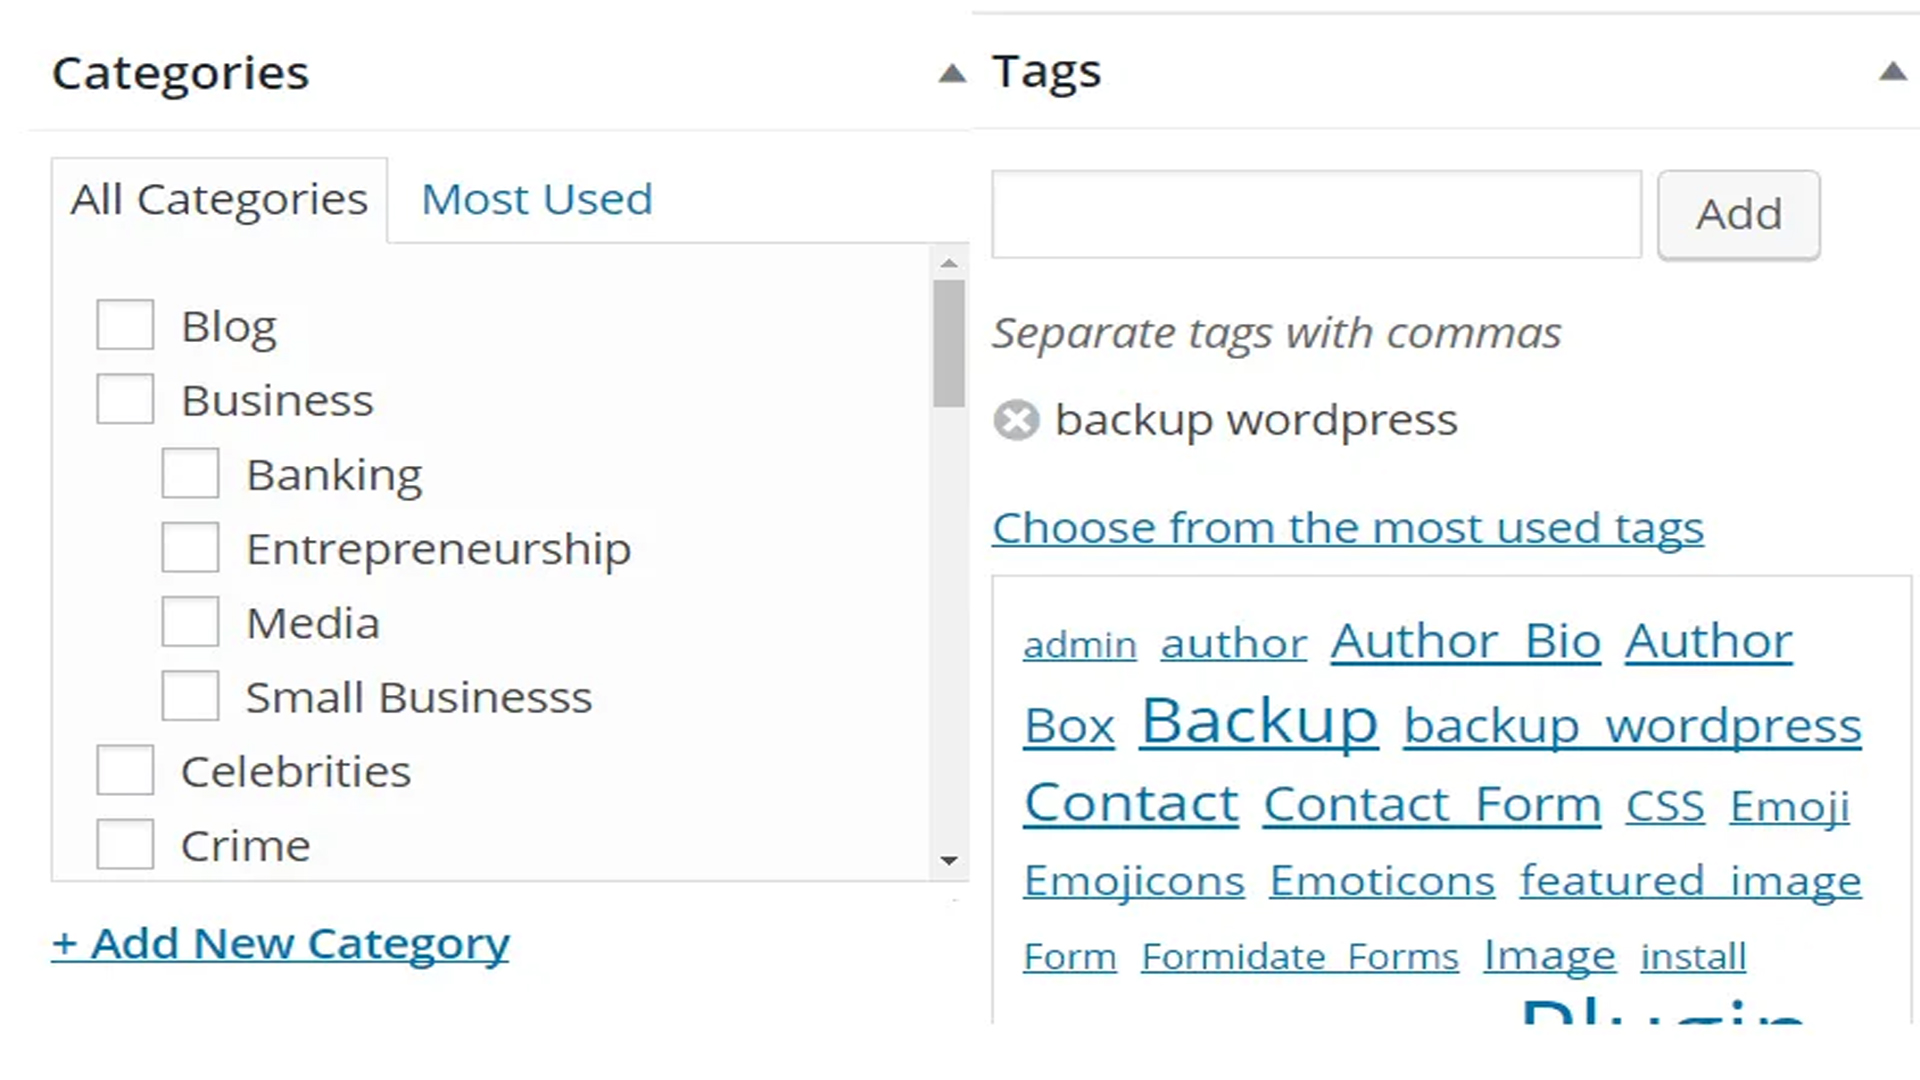 Category and Tags